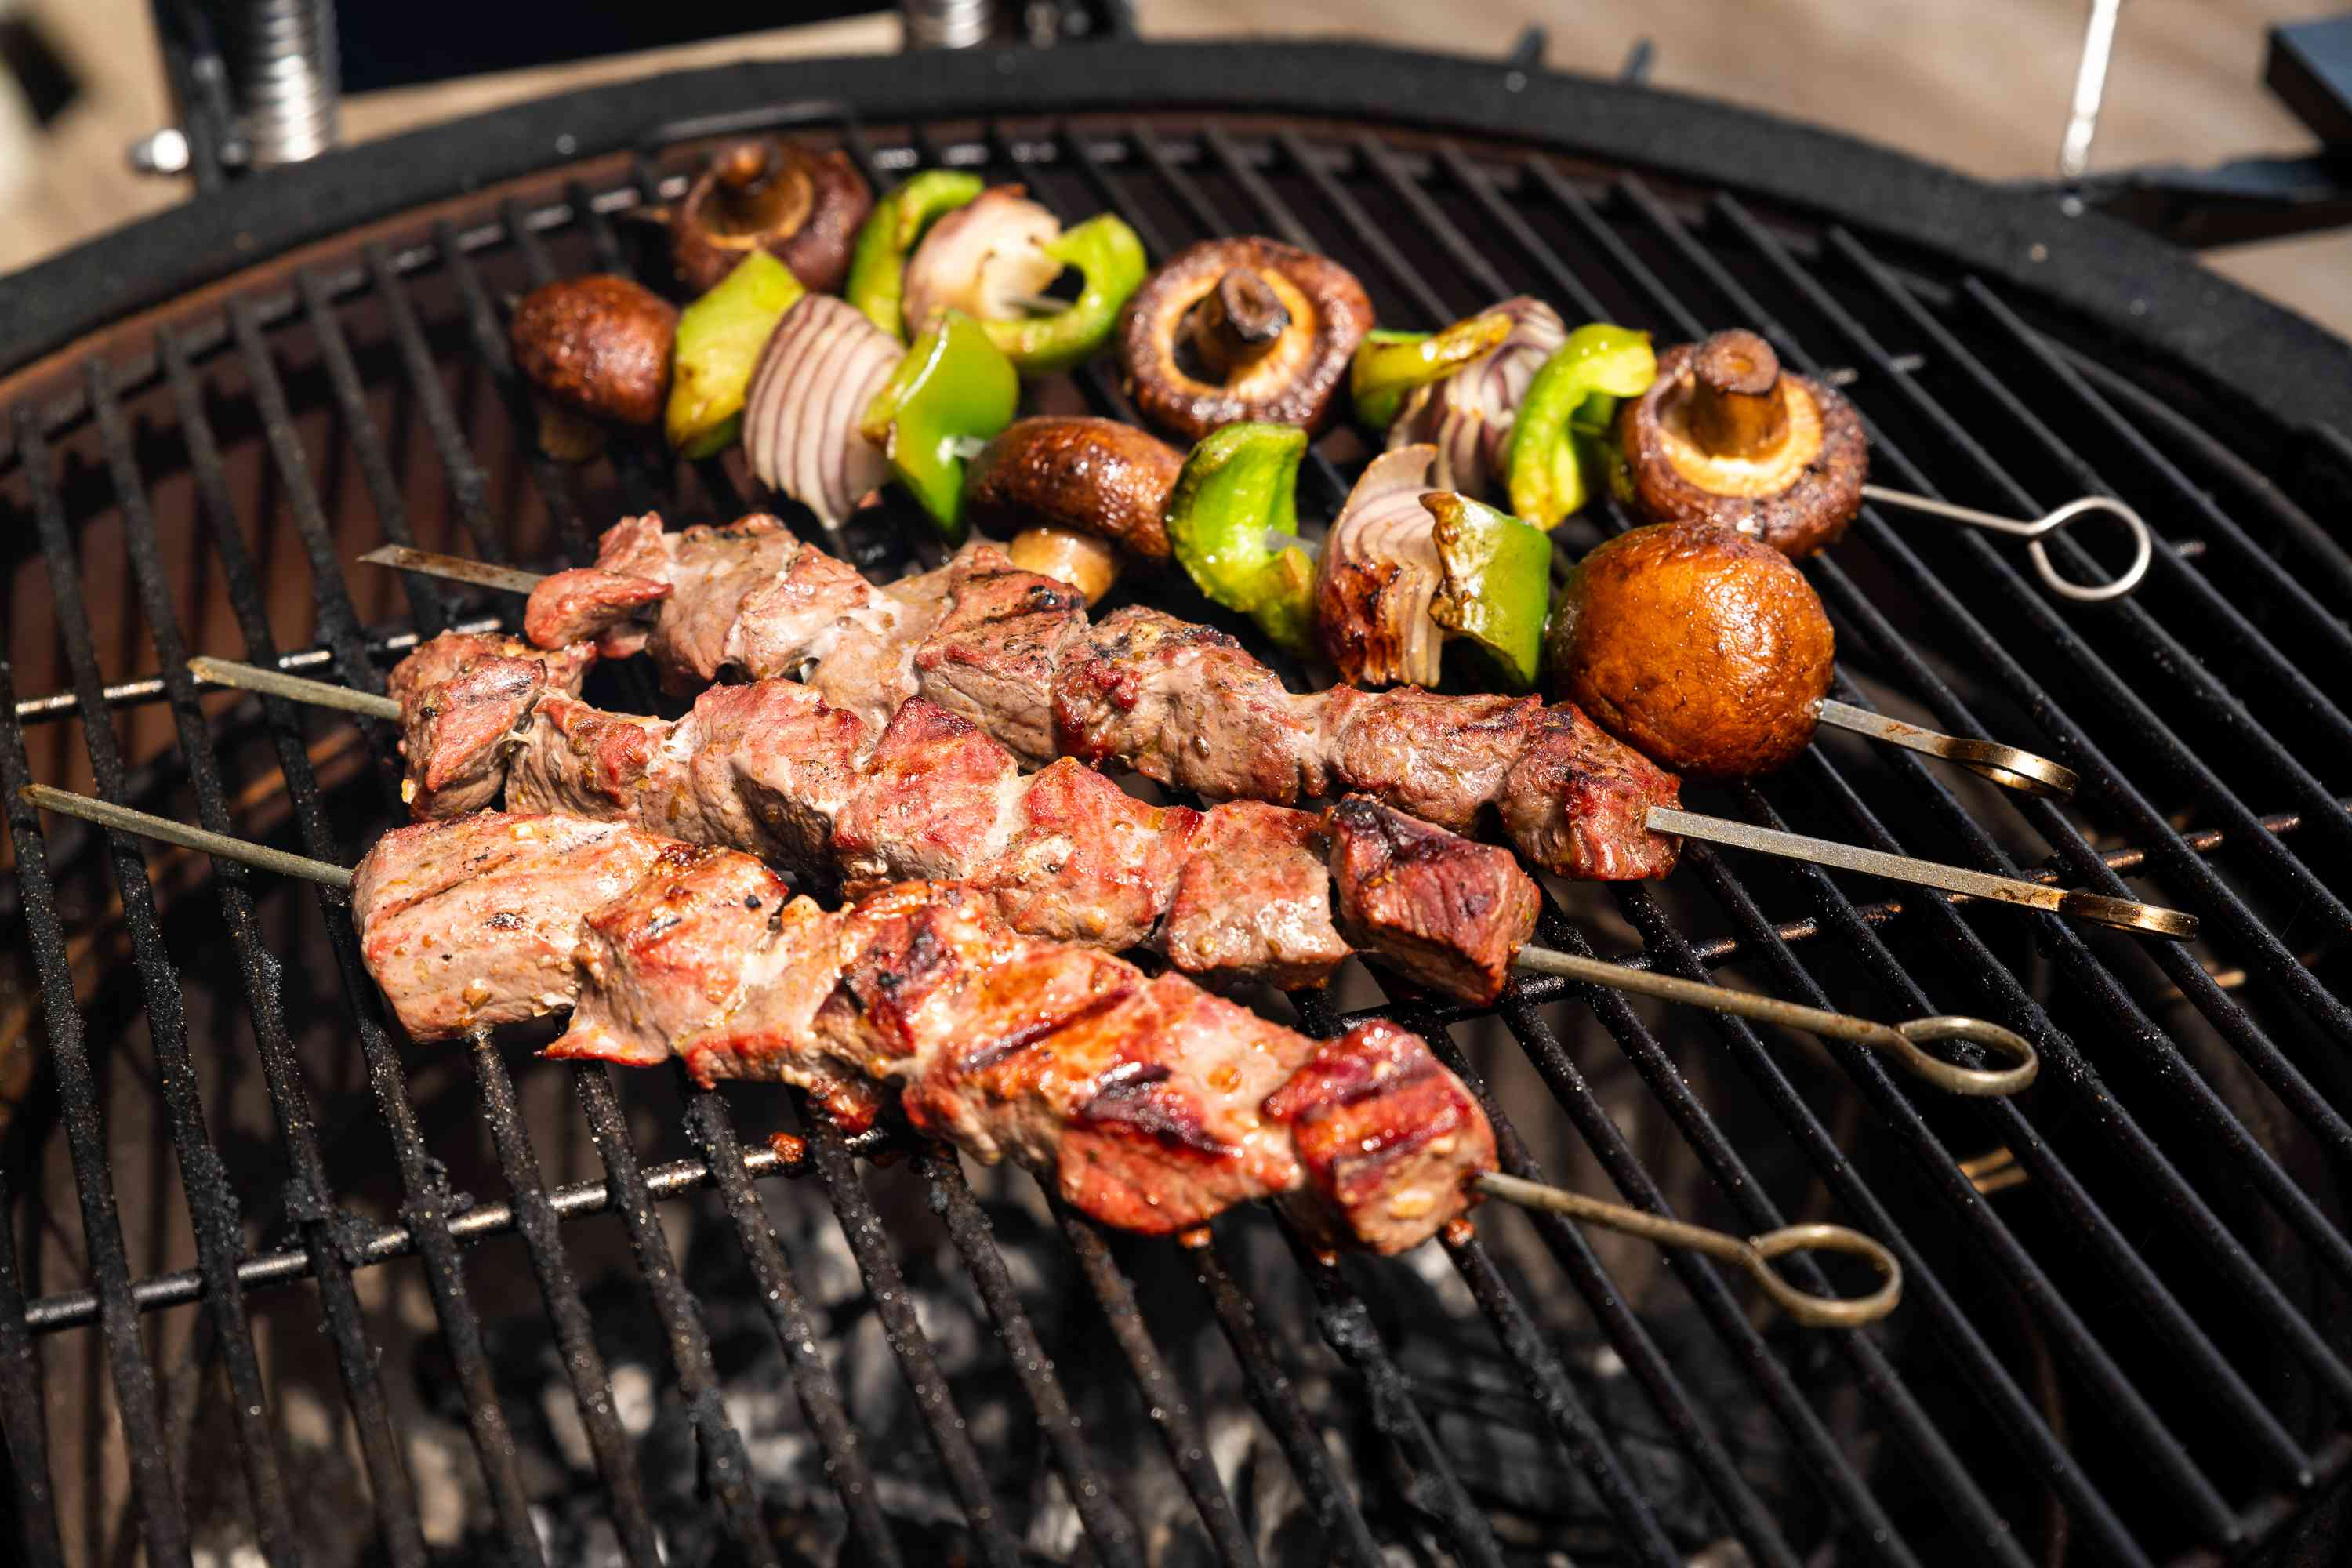 beef and vegetable skewers cooking on a grill